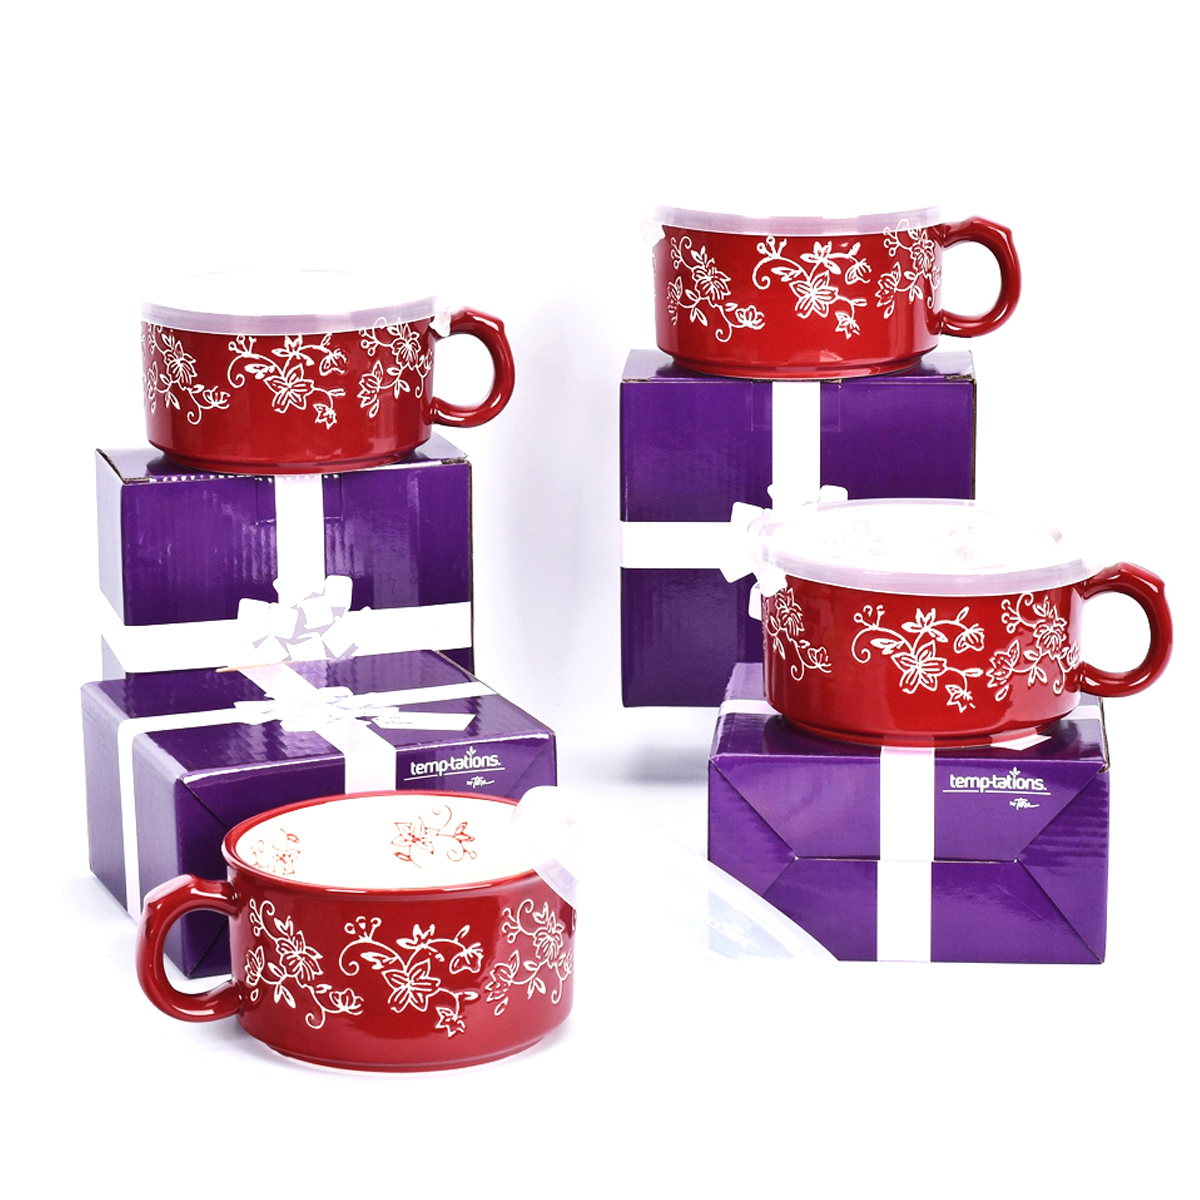 temp-tations® Floral Lace Meal Mugs with Gift Boxes Set – 4 Piece – Cranberry